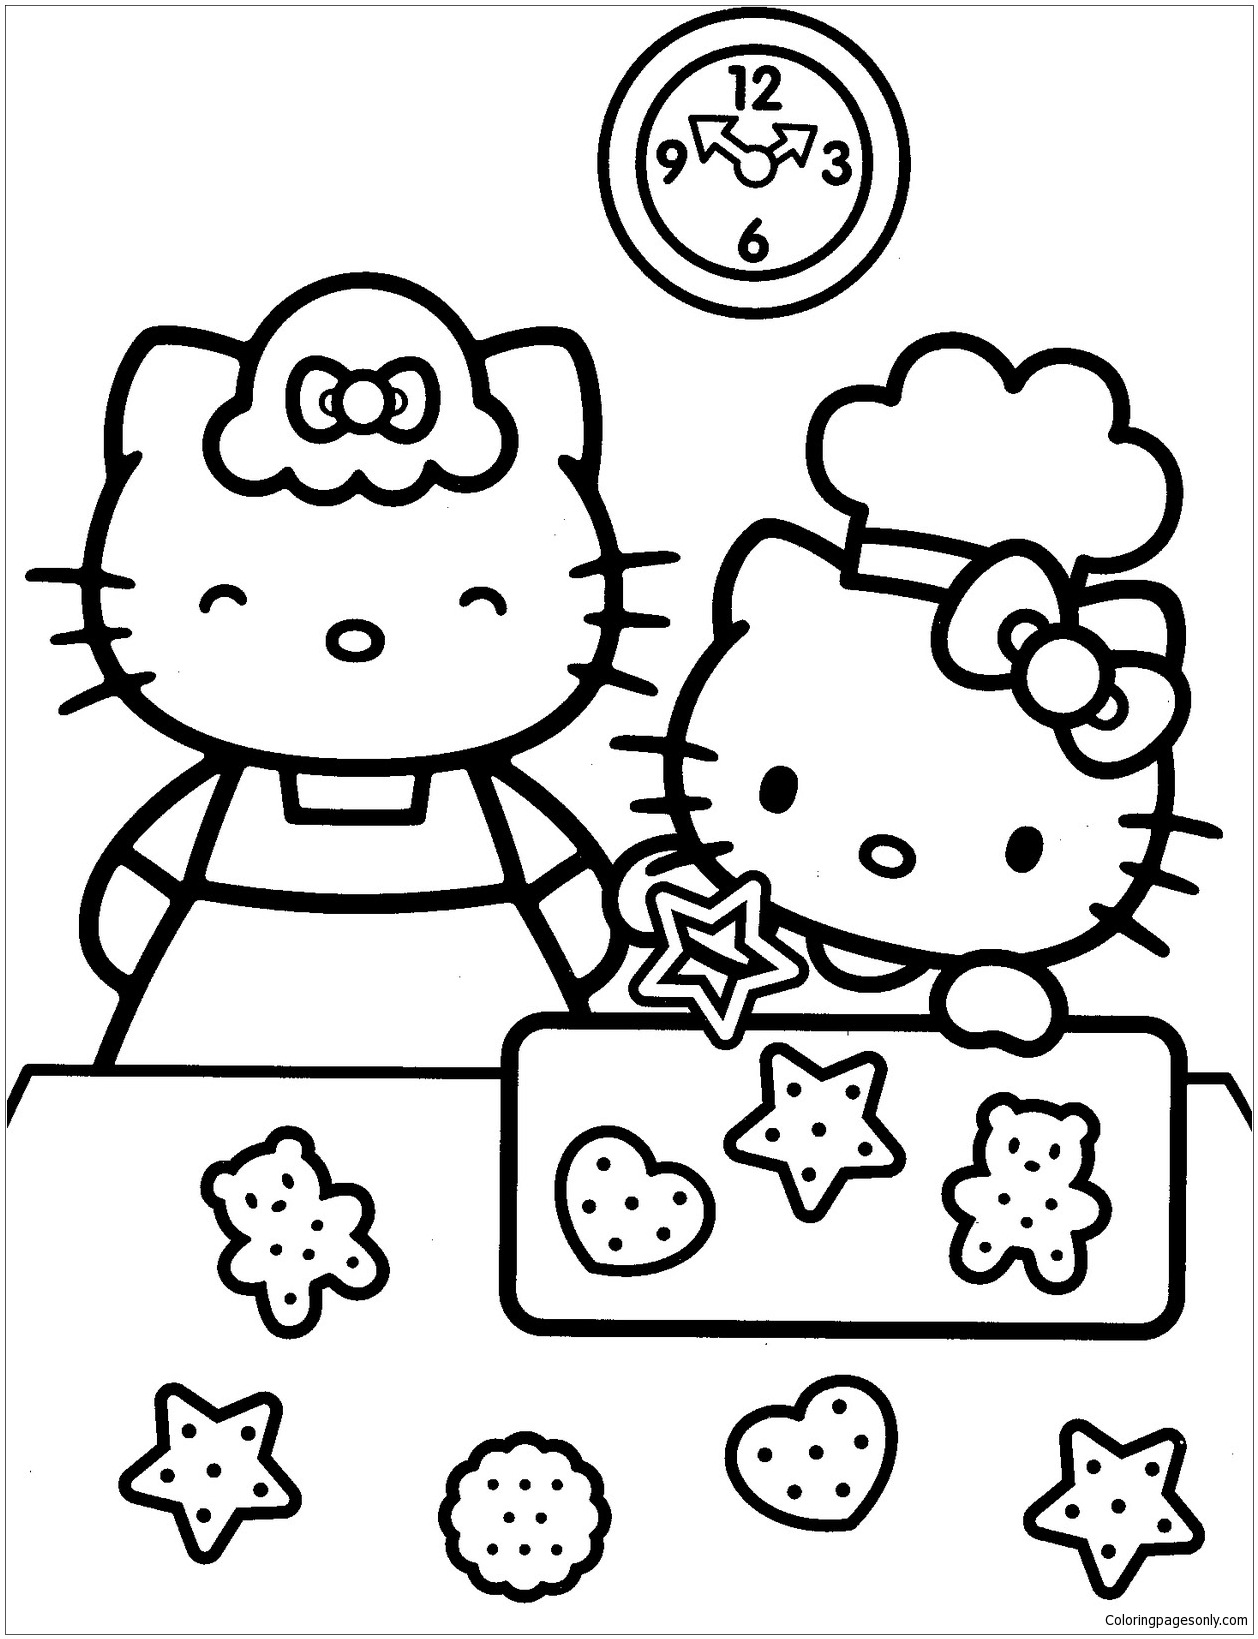 Hello Kitty Learning To Make Bake Cakes With Her Mother Coloring ...